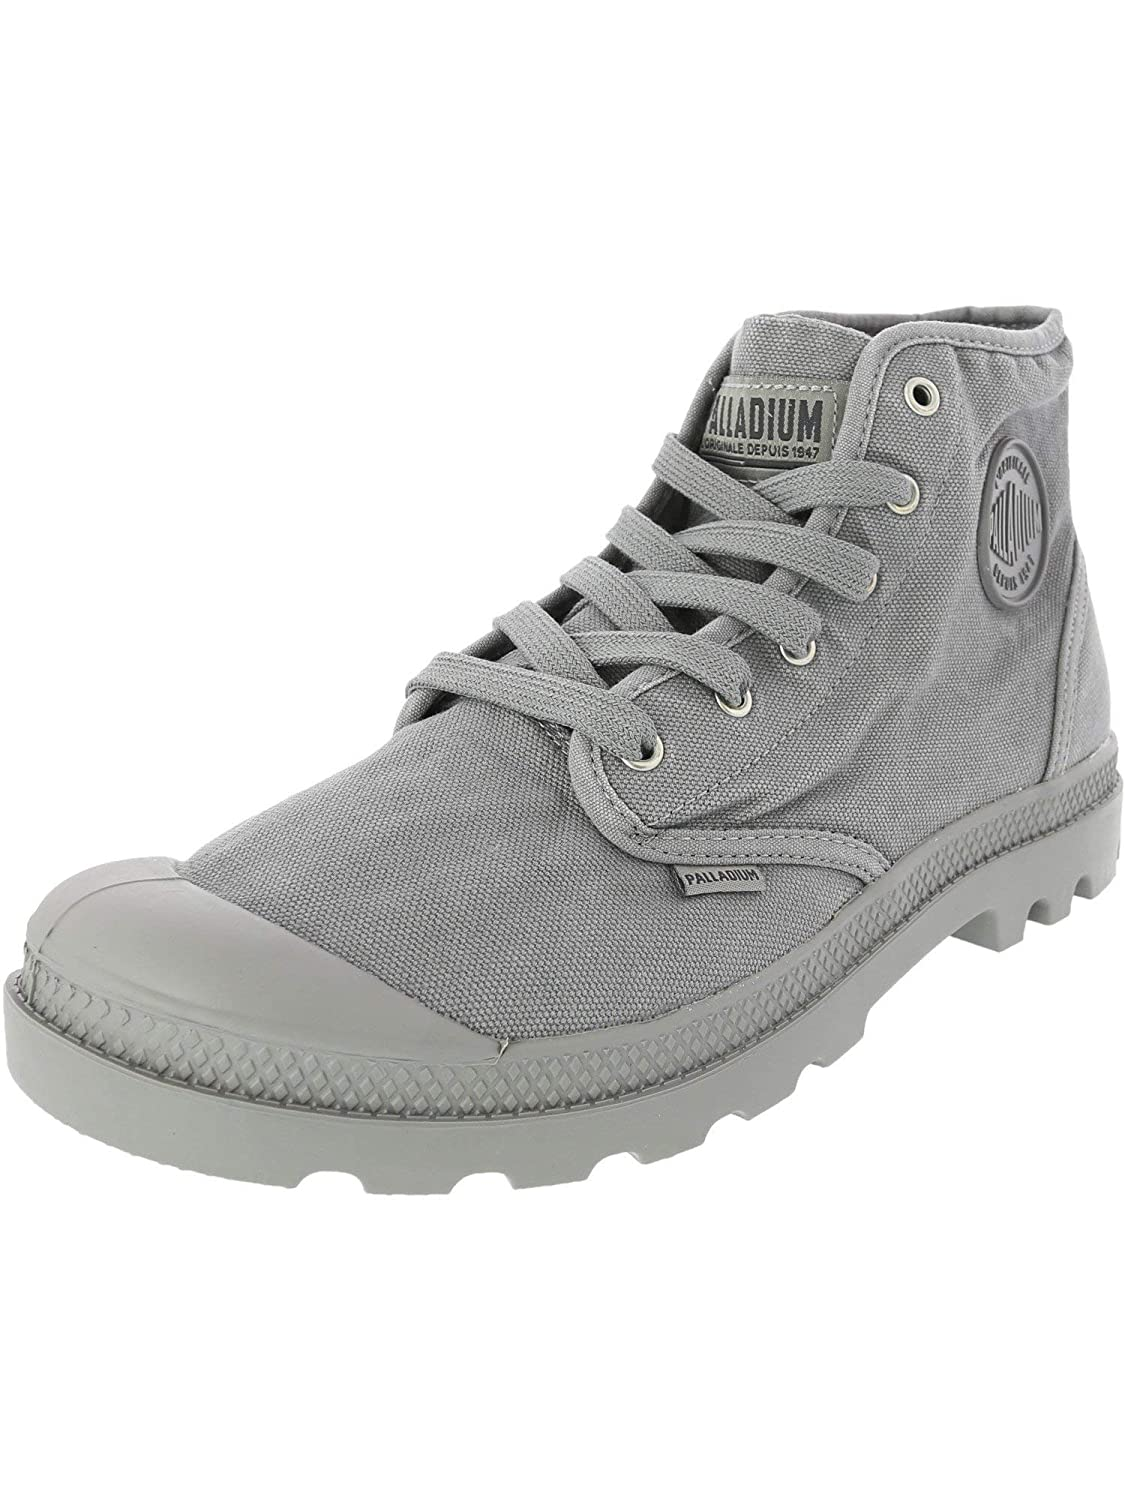 135a3a59404 Amazon.com | Palladium Women's Pampa Hi Canvas Boot | Fashion Sneakers